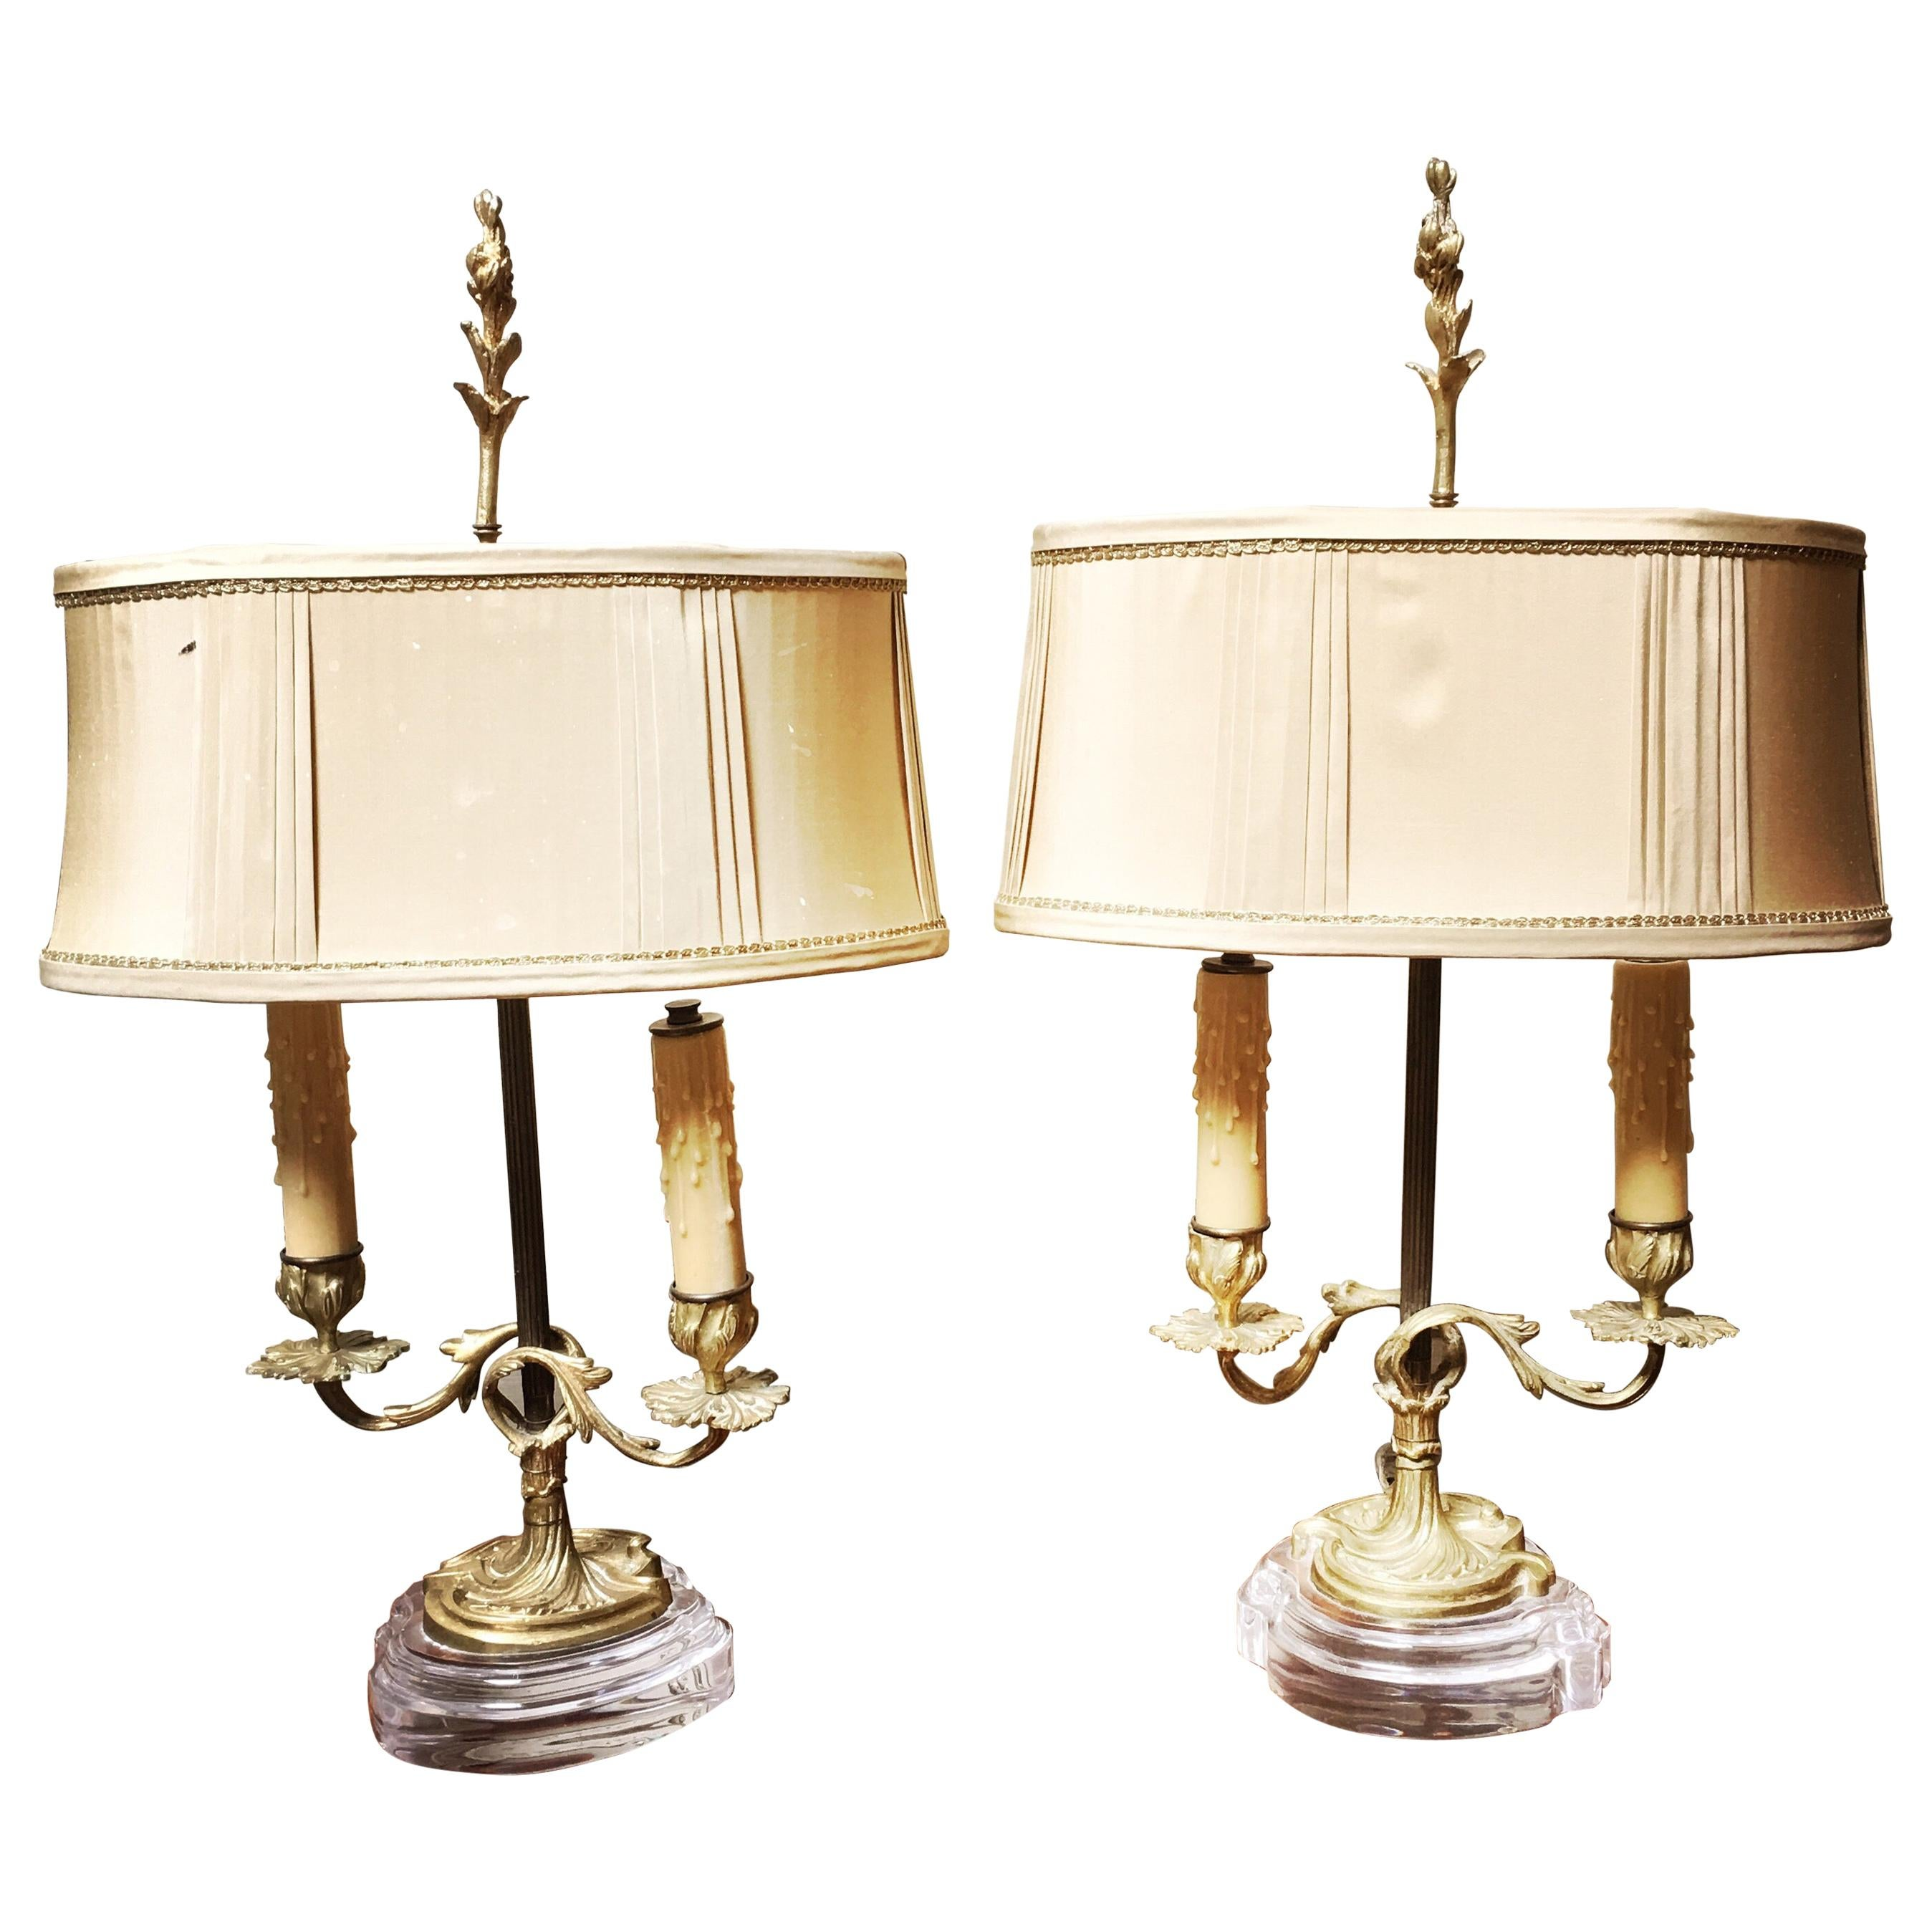 Pair of French Bronze Candlestick Lamp Bases with Acrylic Bases